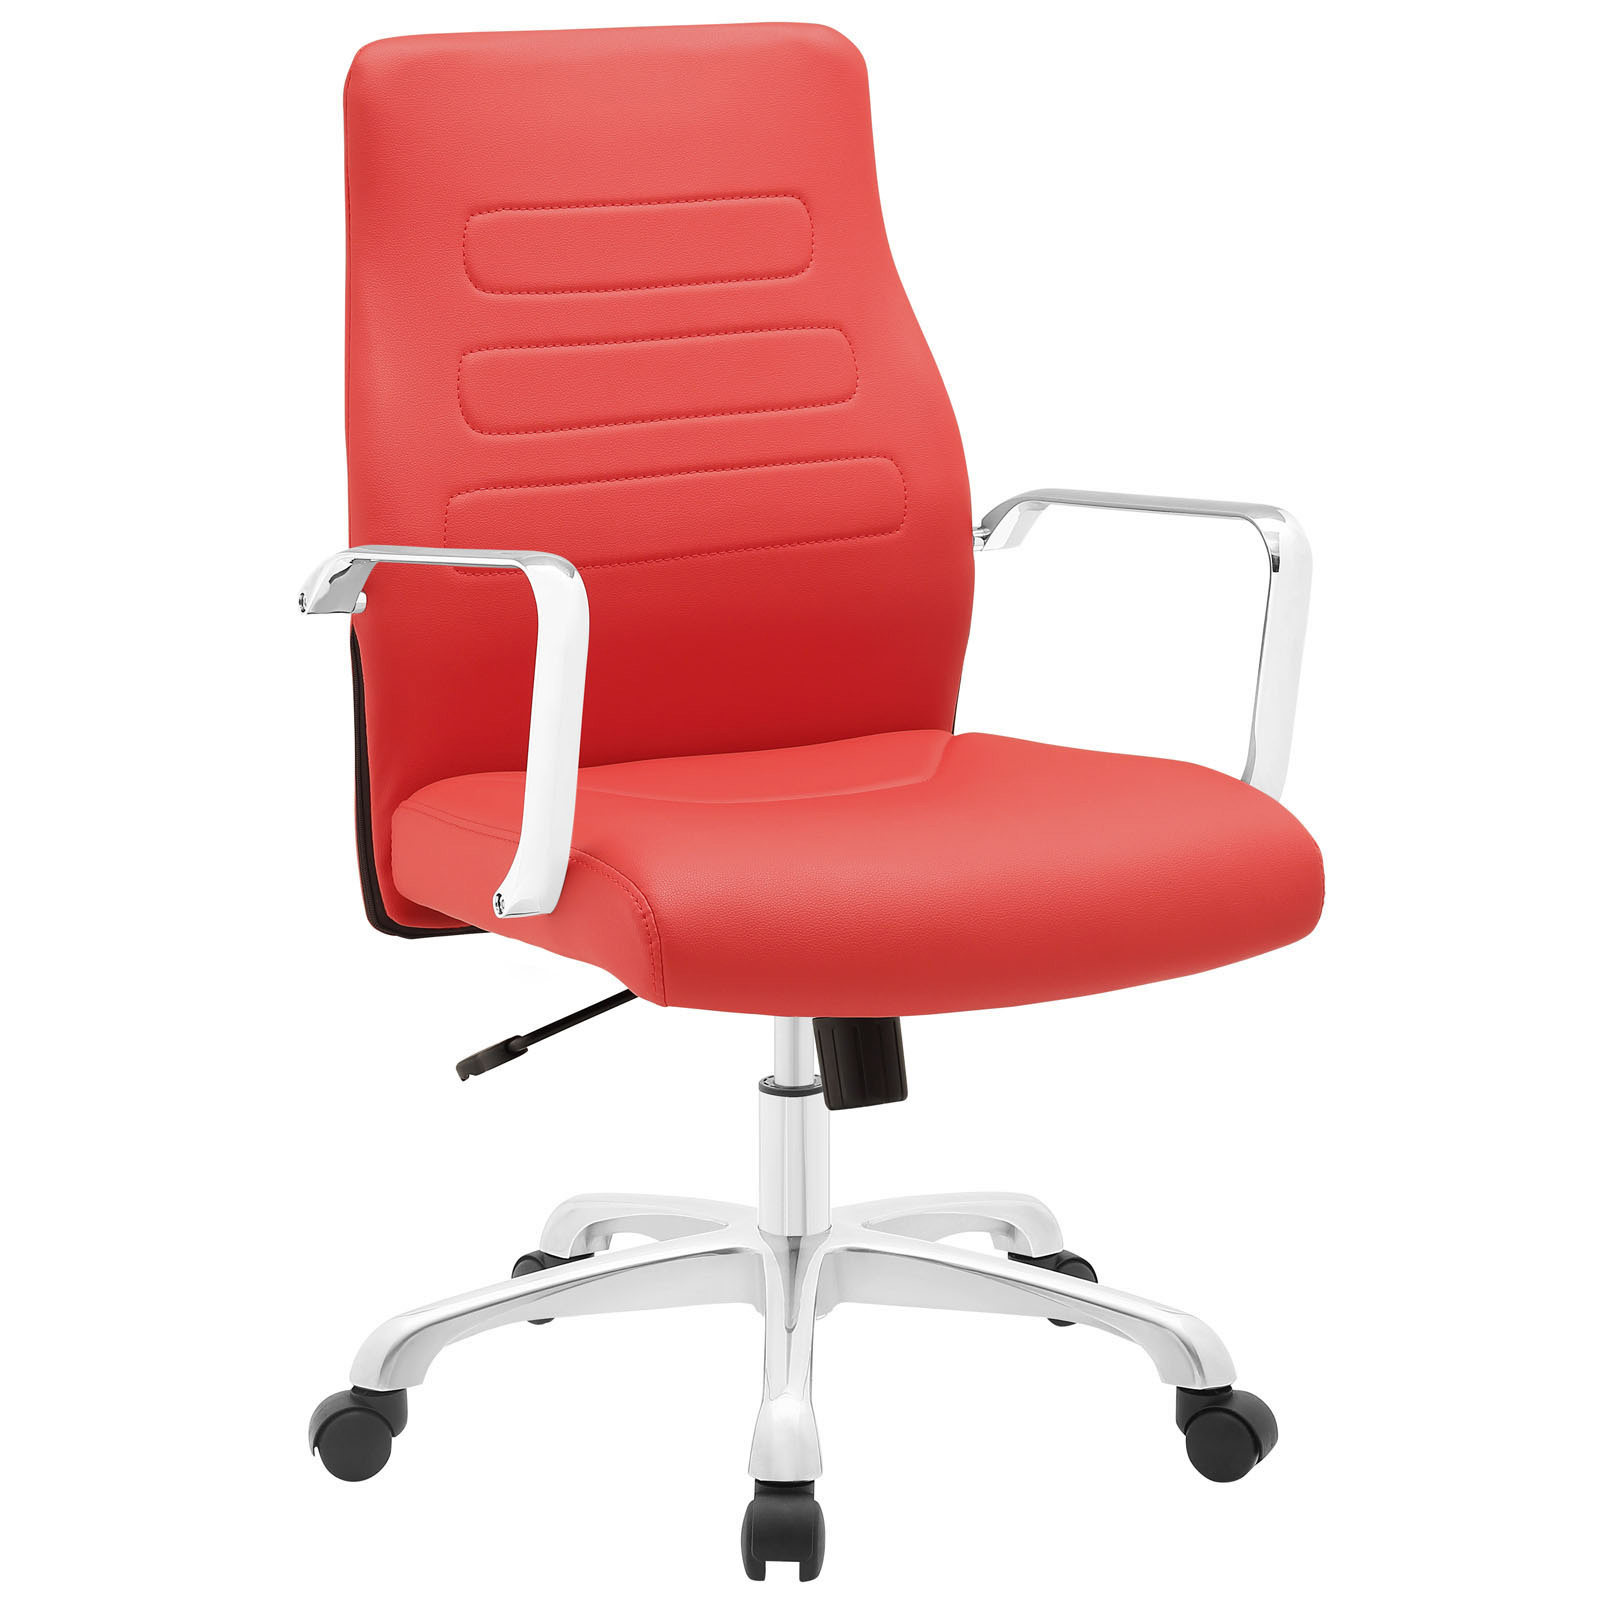 Cheap Chair Discount Chairs fice Furniture Chairs